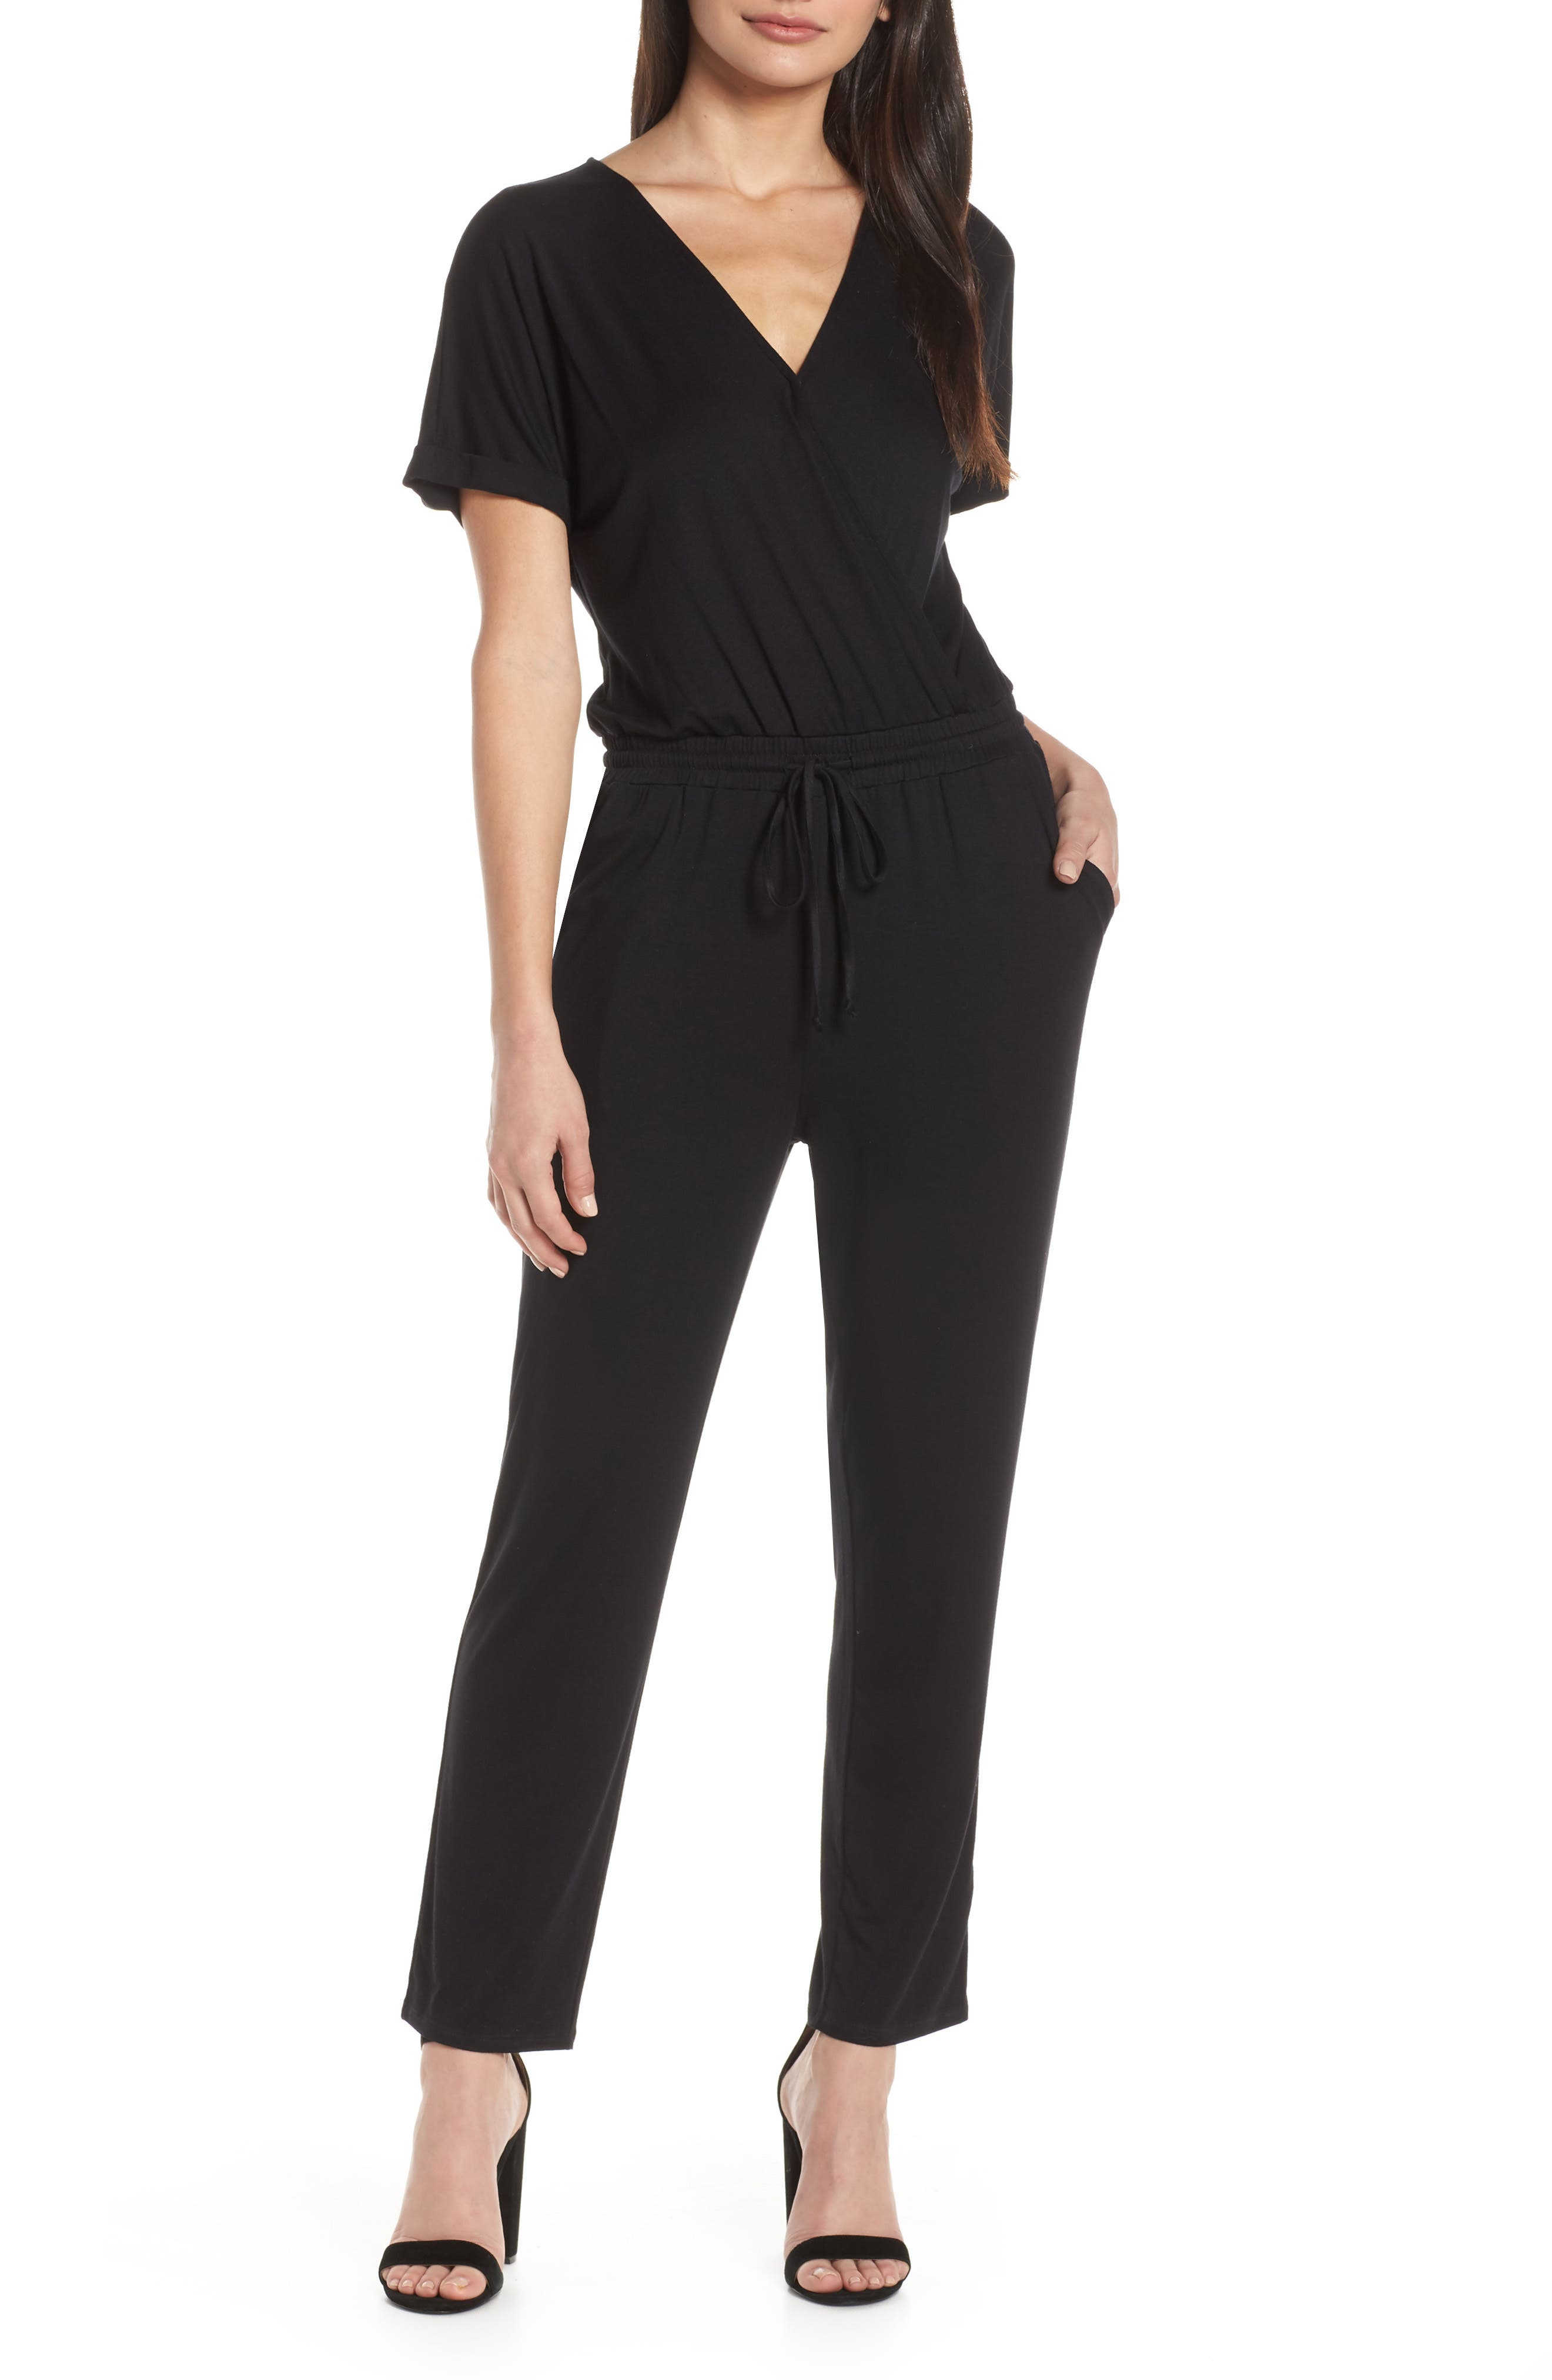 Among this season\\\'s softer silhouettes, this faux-wrap jumpsuit channels classic sophistication with modern touches. A surplice neckline, drawstring waist and an ankle length come together to show off your best assets. Style Name: Chelsea28 Faux Wrap Jumpsuit. Style Number: 5733177. Available in stores.